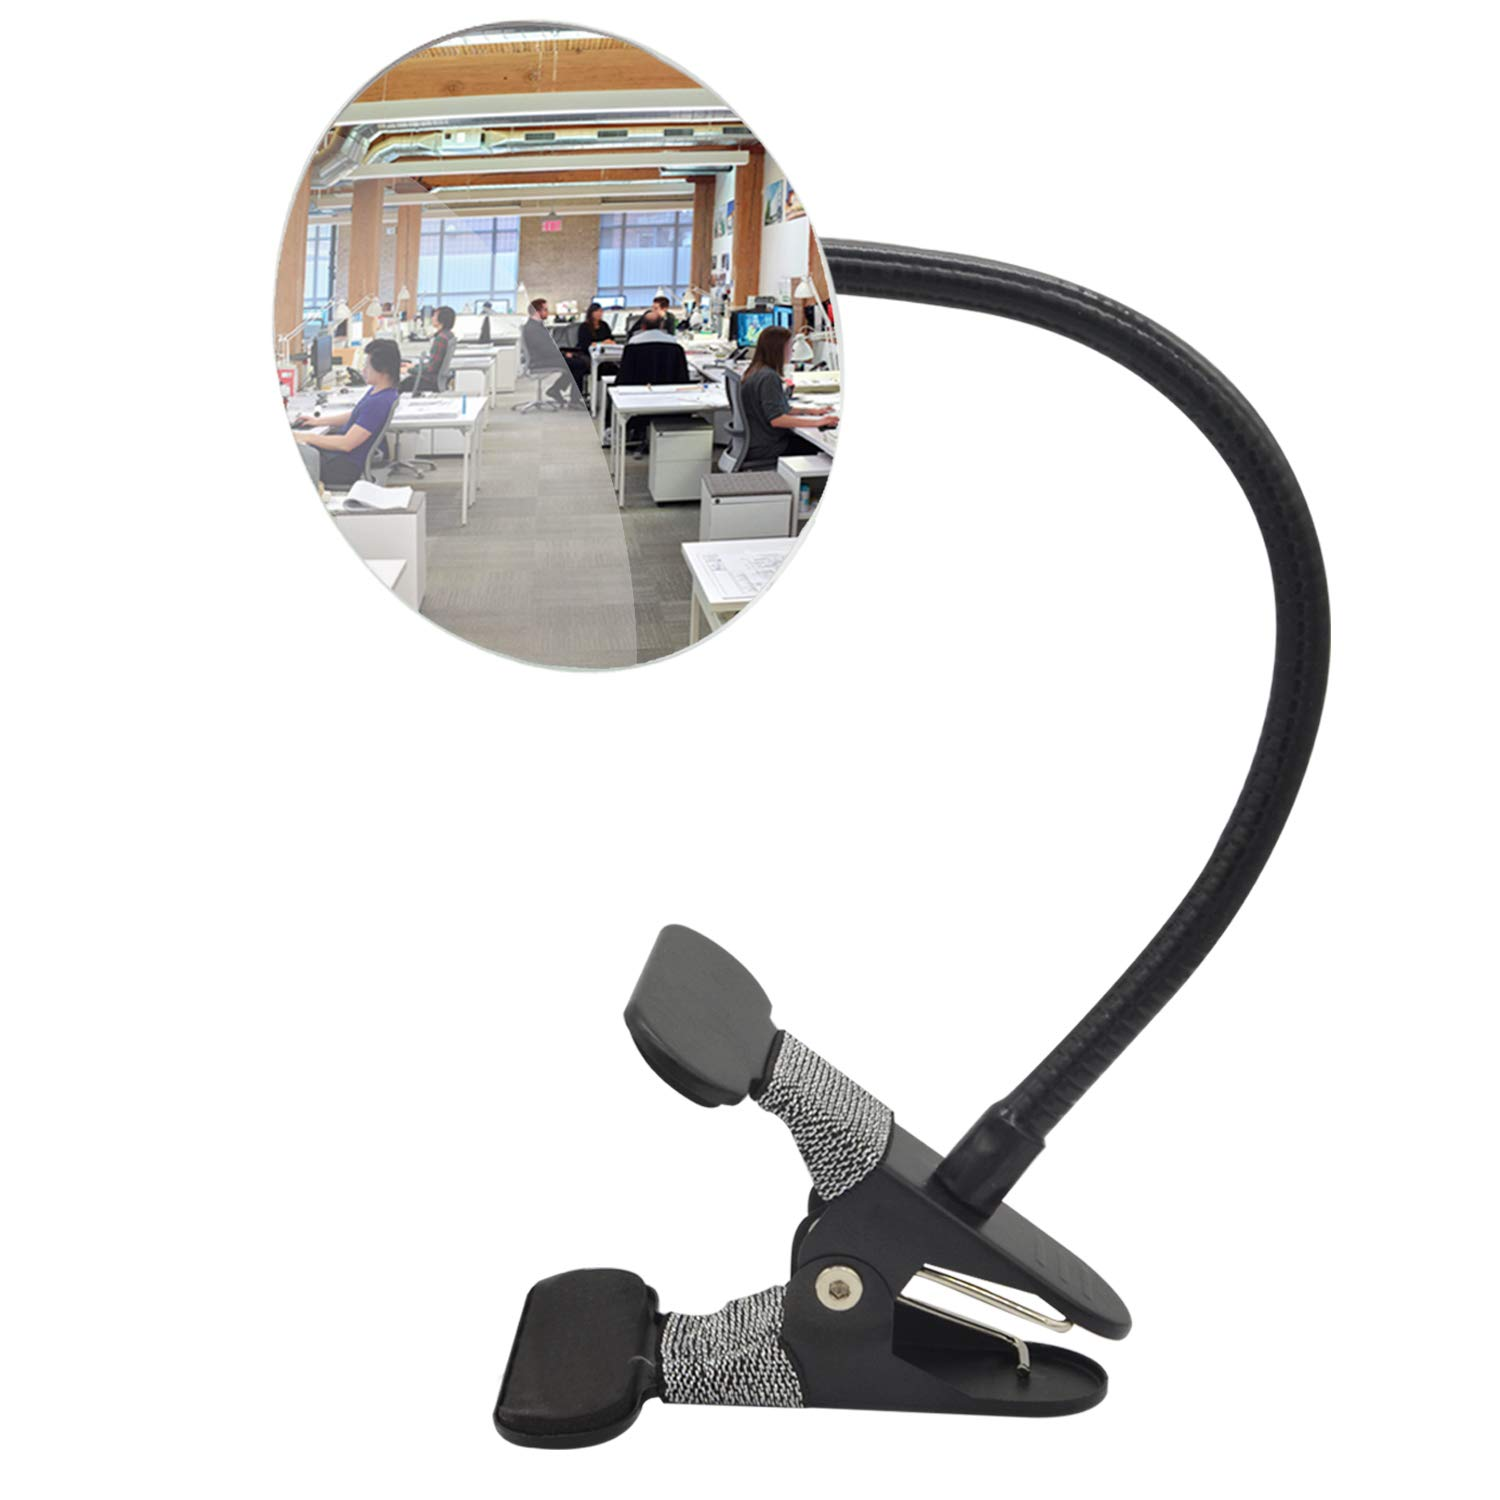 "Ampper Clip On Security Mirror, Convex Cubicle Mirror for Personal Safety and Security Desk Rear View Monitors or Anywhere (3.35"", Round)"